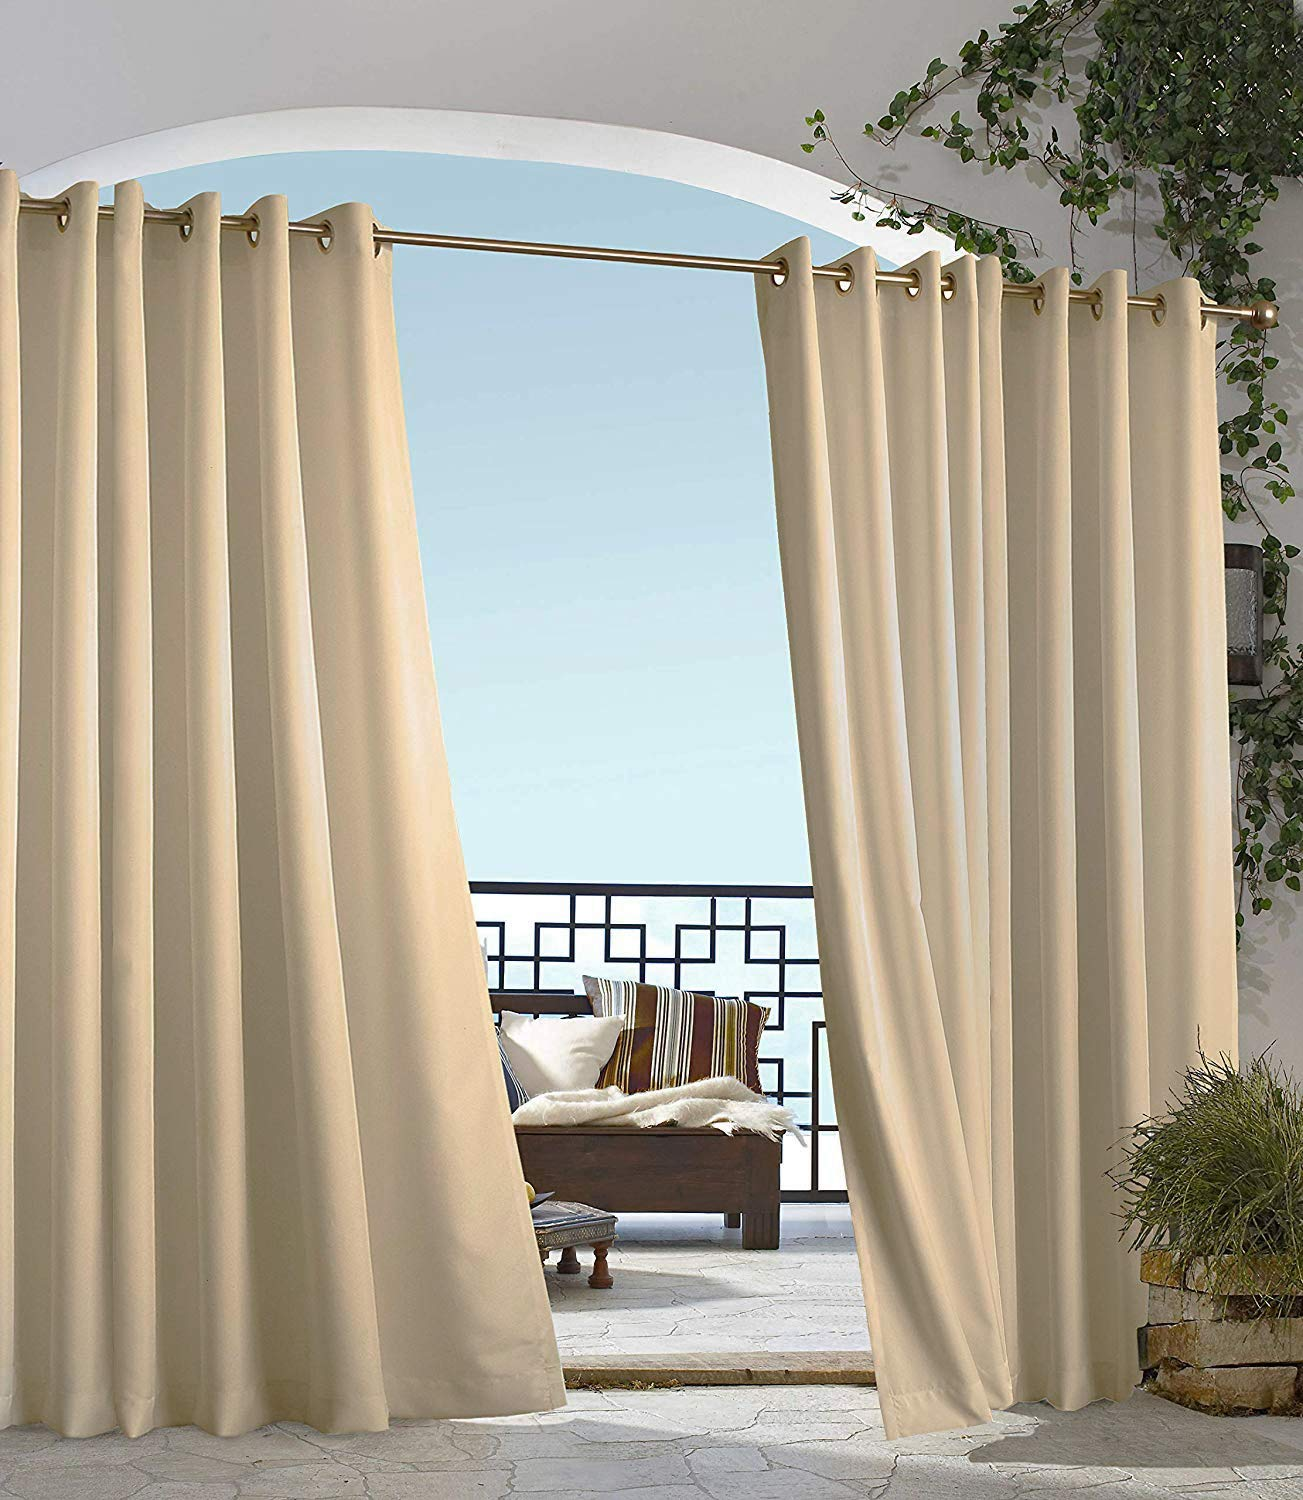 Outdoor Decor Commonwealth Gazebo 96'' Grommet Curtain Panel in Taupe